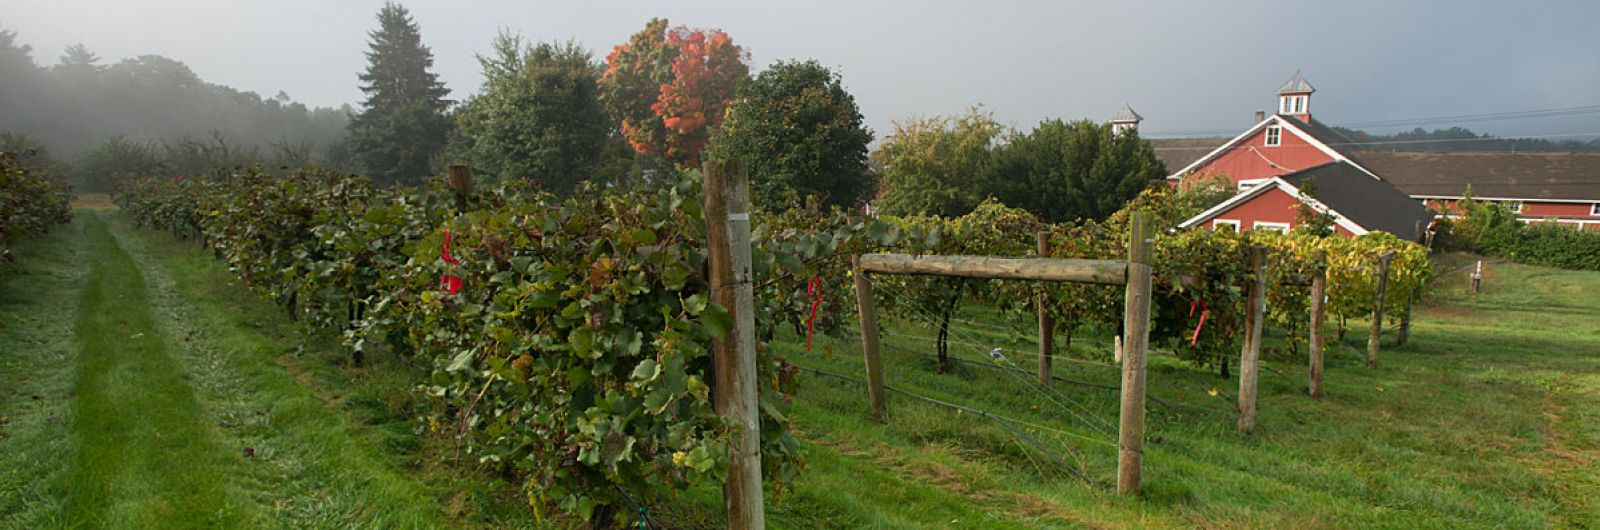 Cold Spring Orchard buildings and grape vines